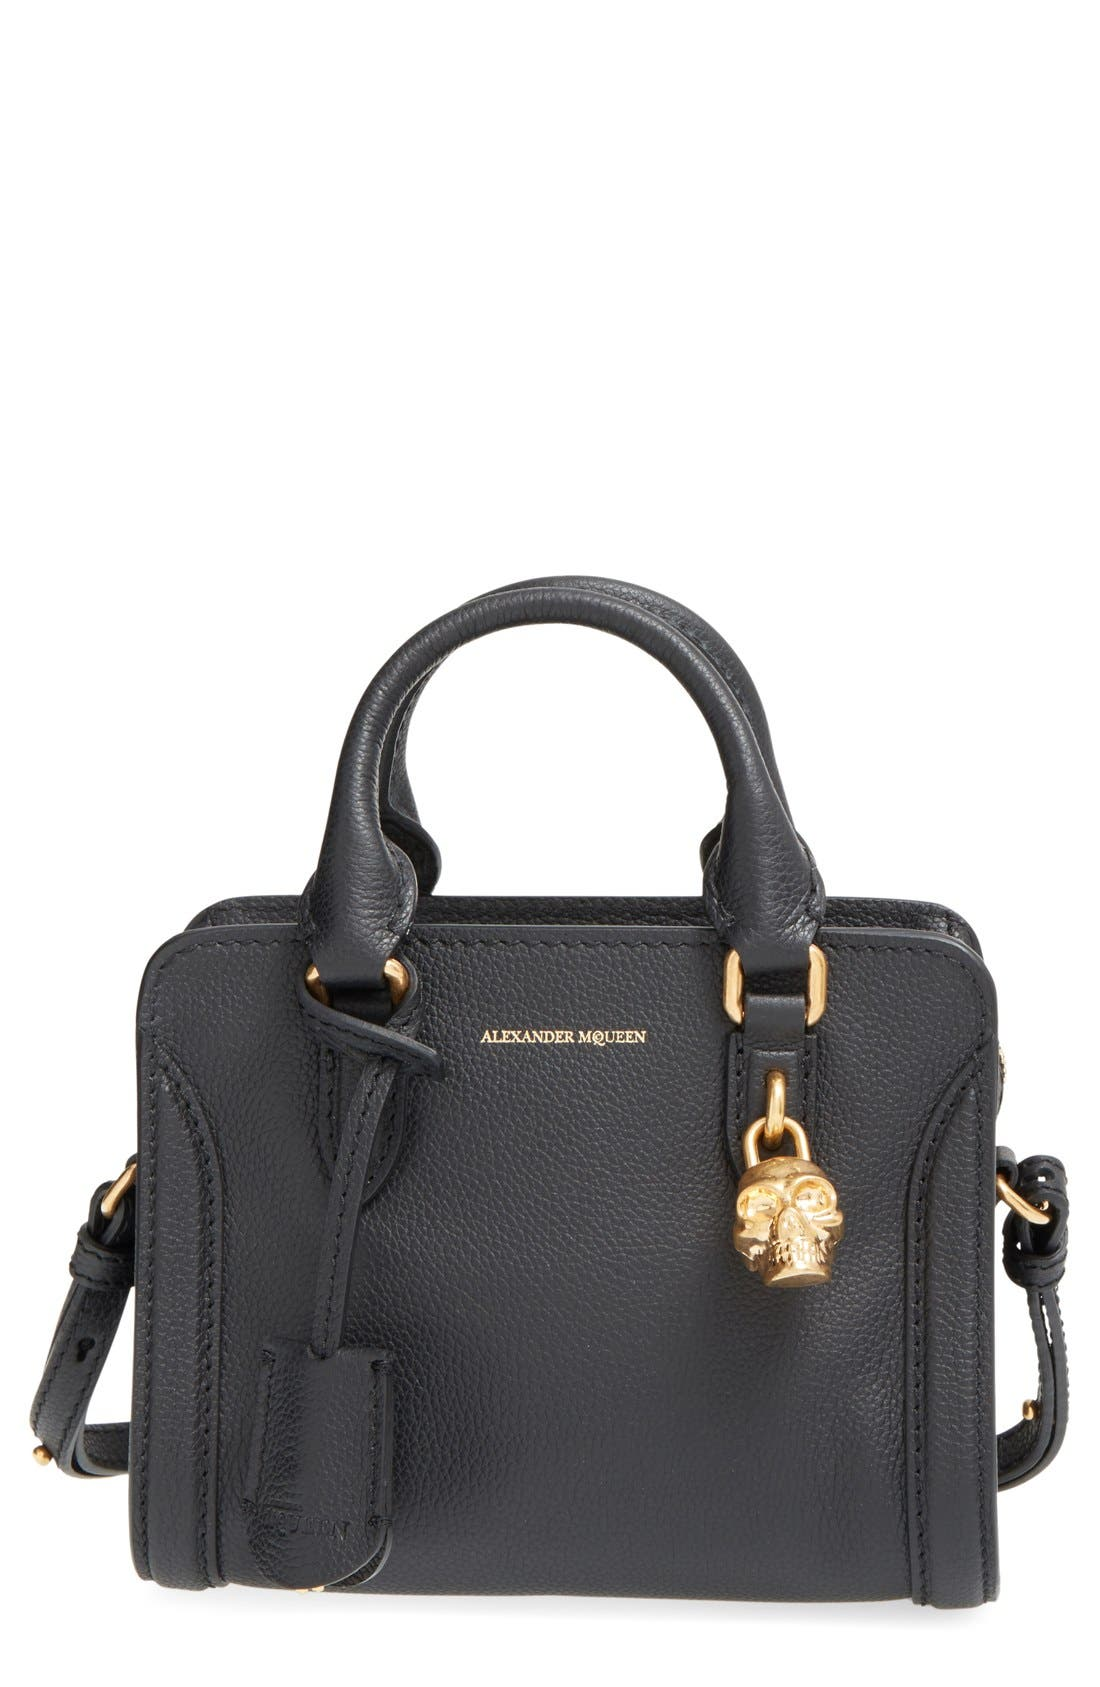 Main Image - Alexander McQueen 'Mini Padlock' Calfskin Leather Satchel